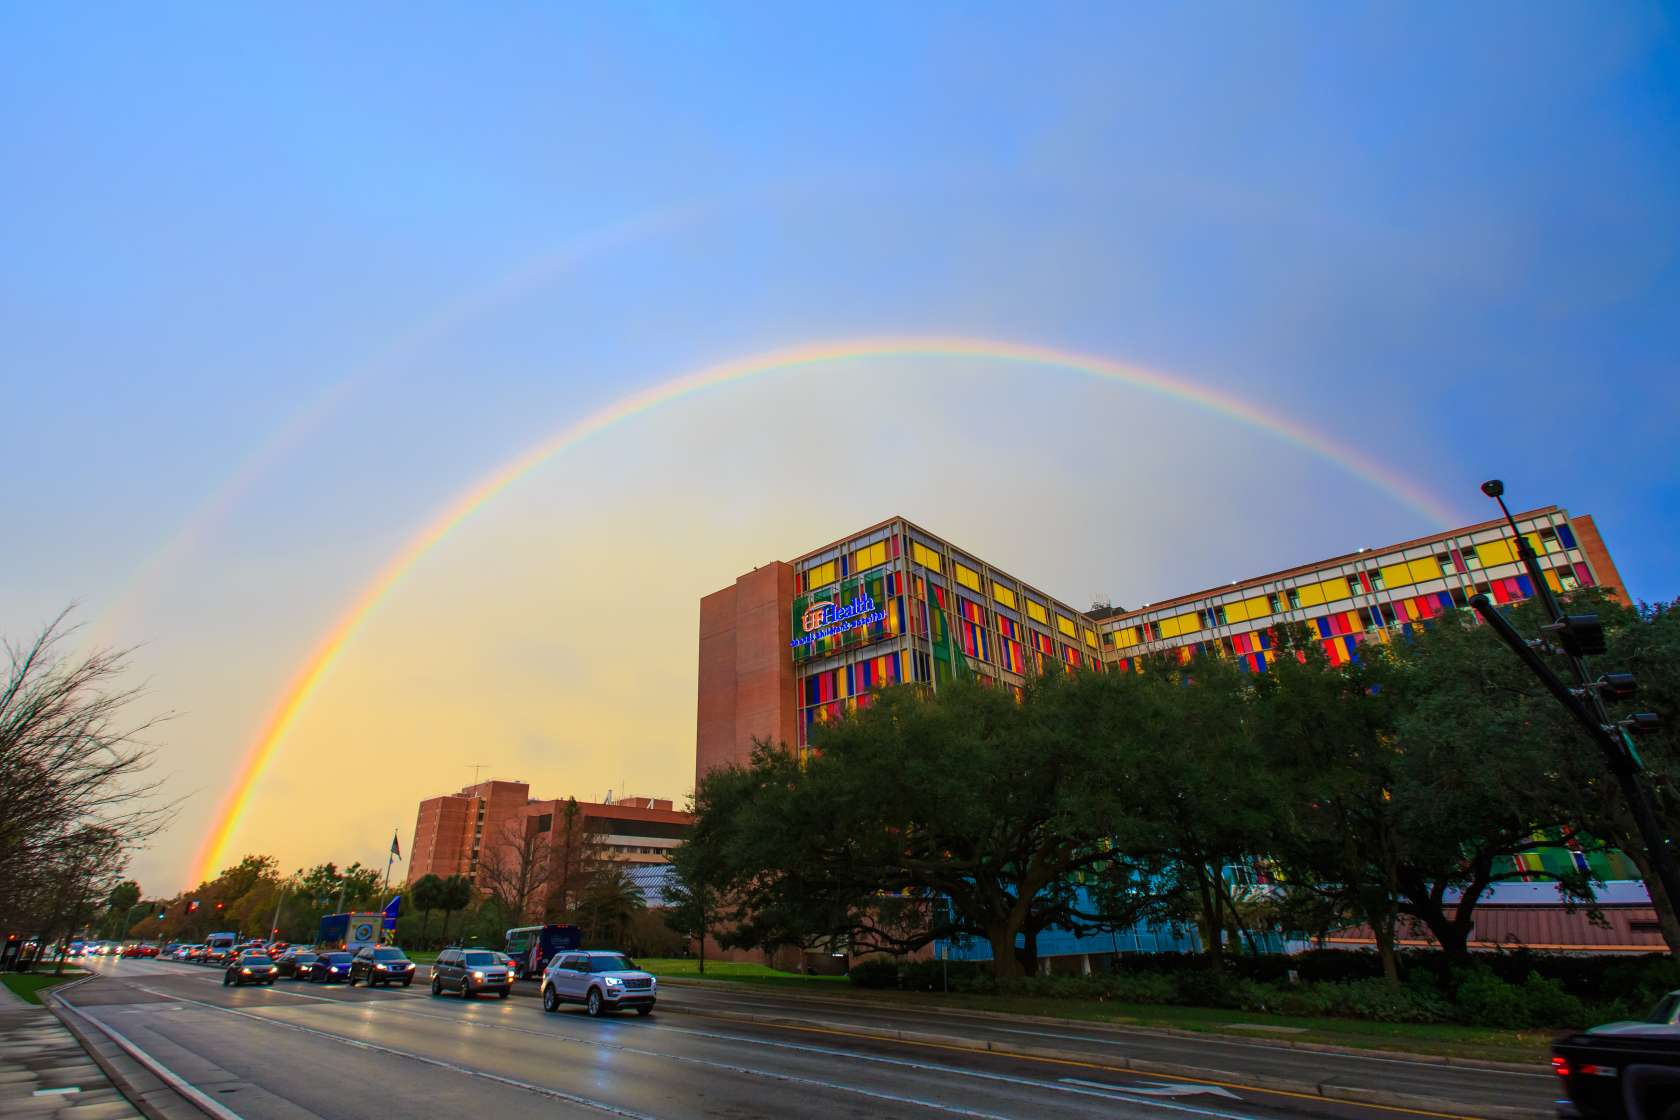 Exterior of UF & Shands Children's Hospital with rainbow over the building